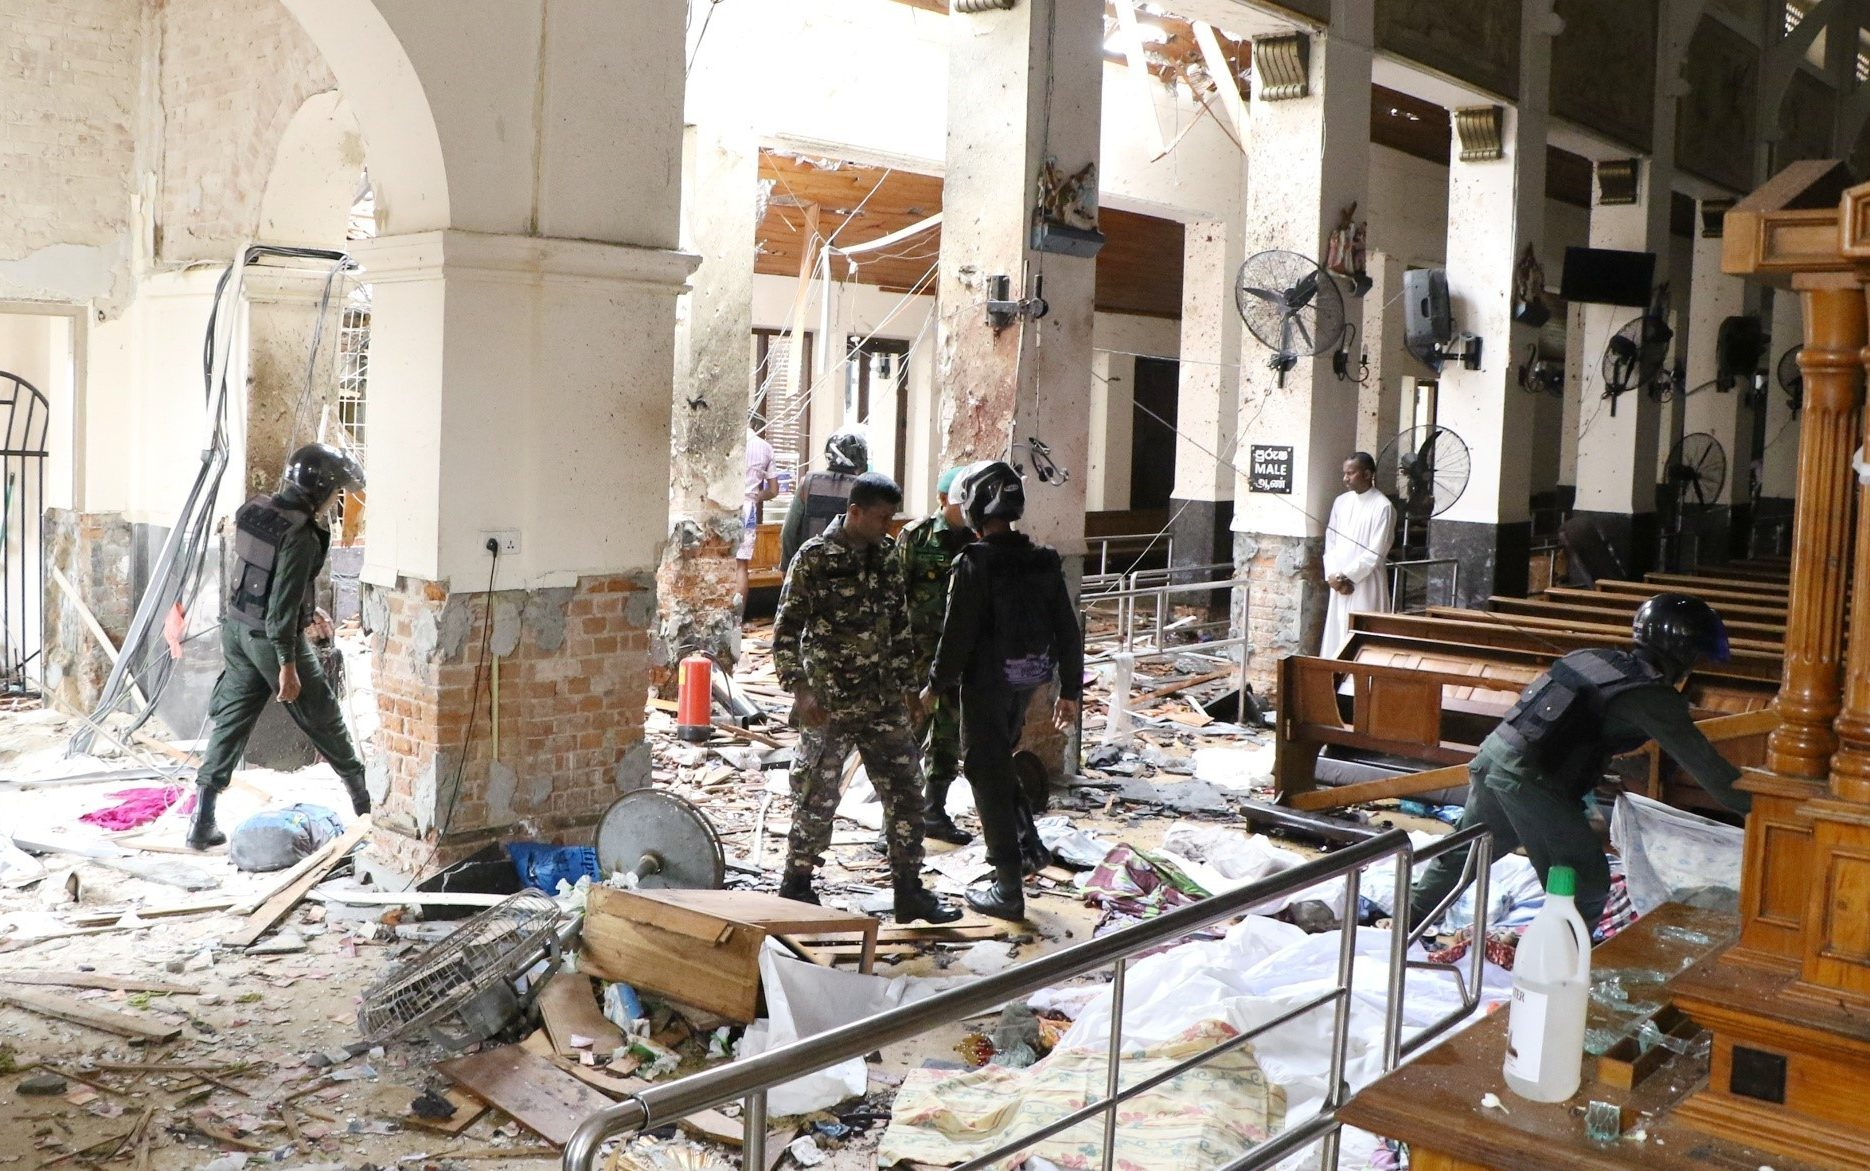 Sri Lankan security forces may have allowed Easter Sunday bombings to proceed, MPs suggest